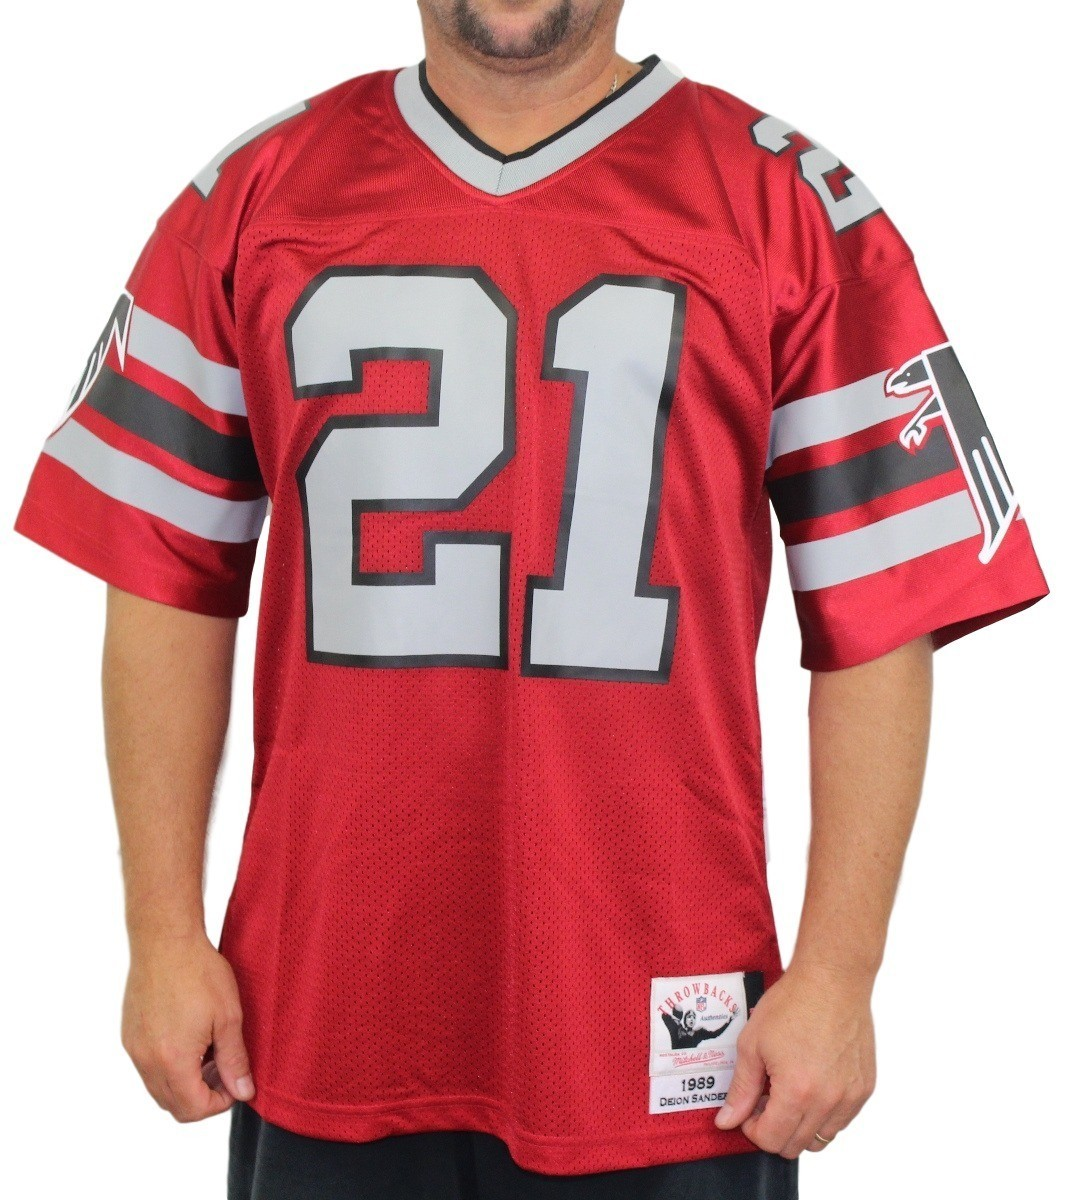 3ea8f0a7b84 ... sale deion sanders atlanta falcons mitchell ness authentic 1989 red nfl  jersey b6937 3be54